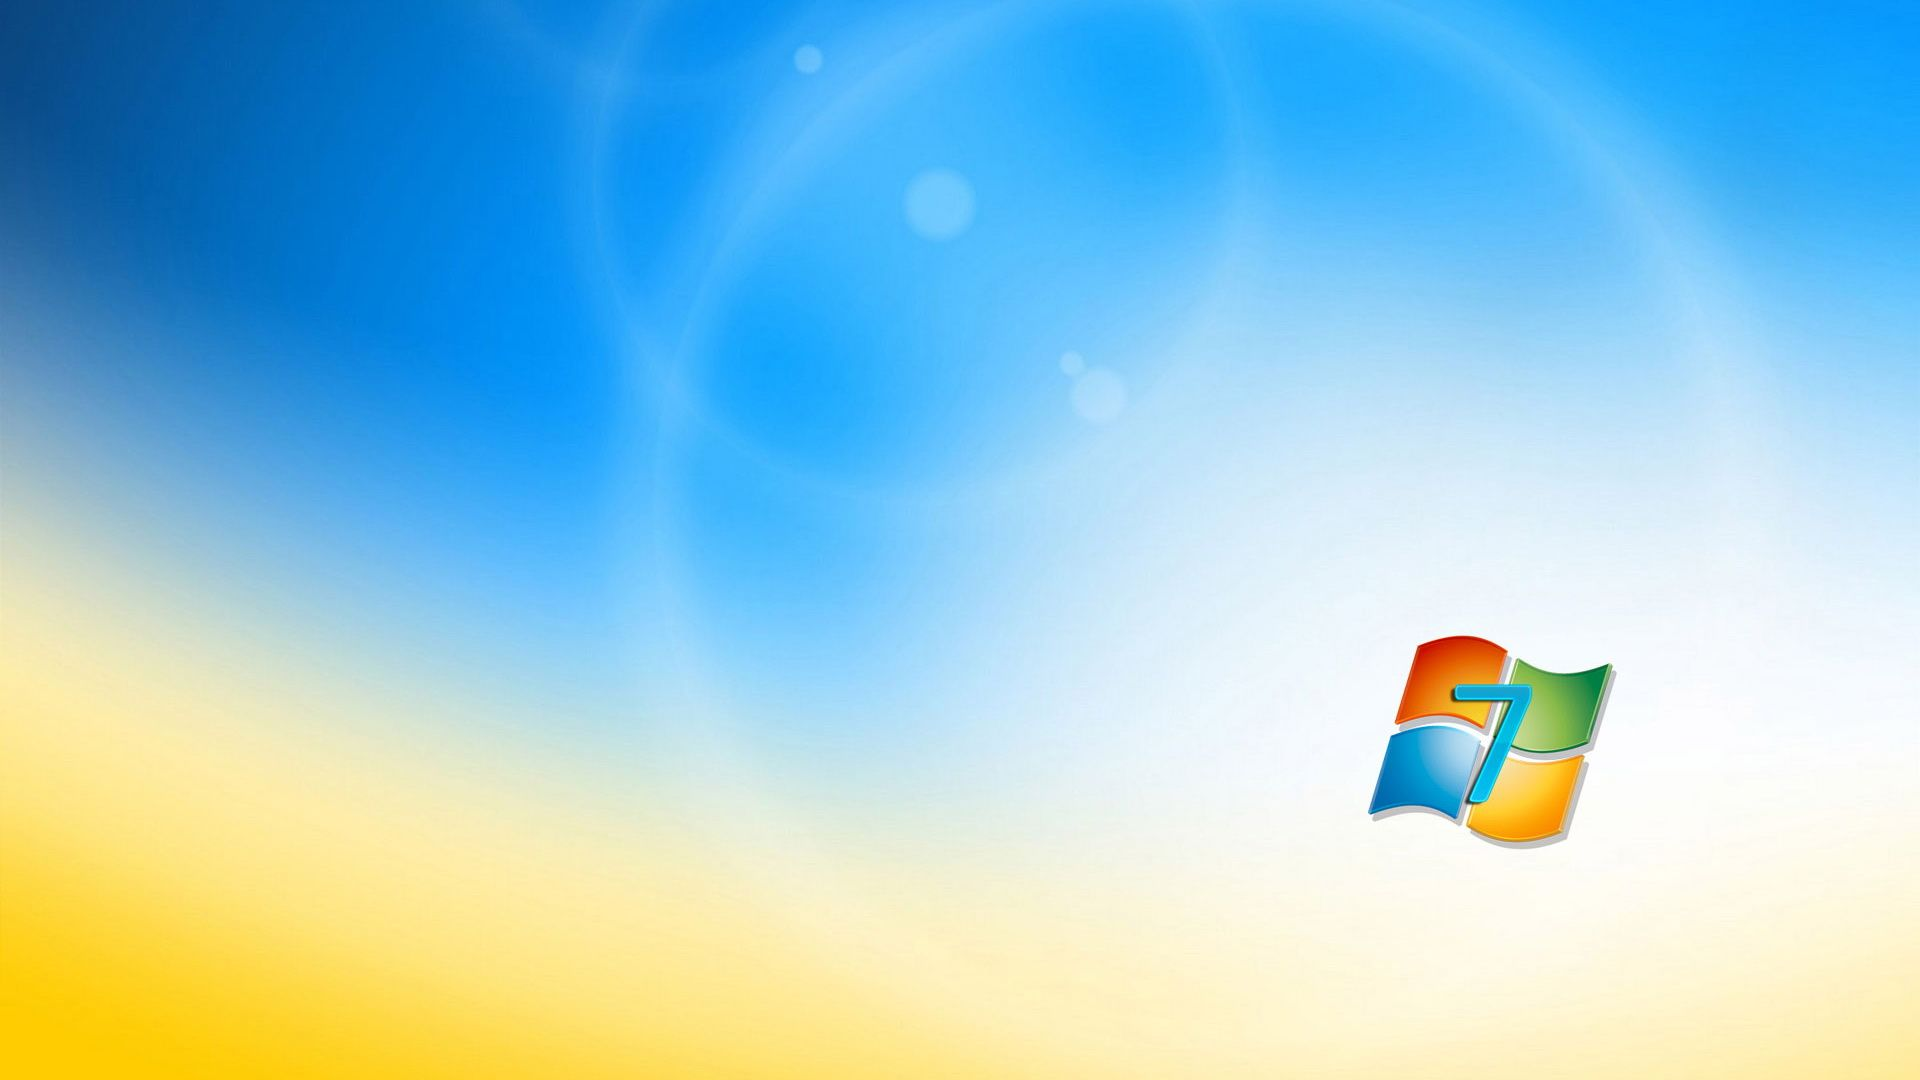 Windows Span background wallpaper